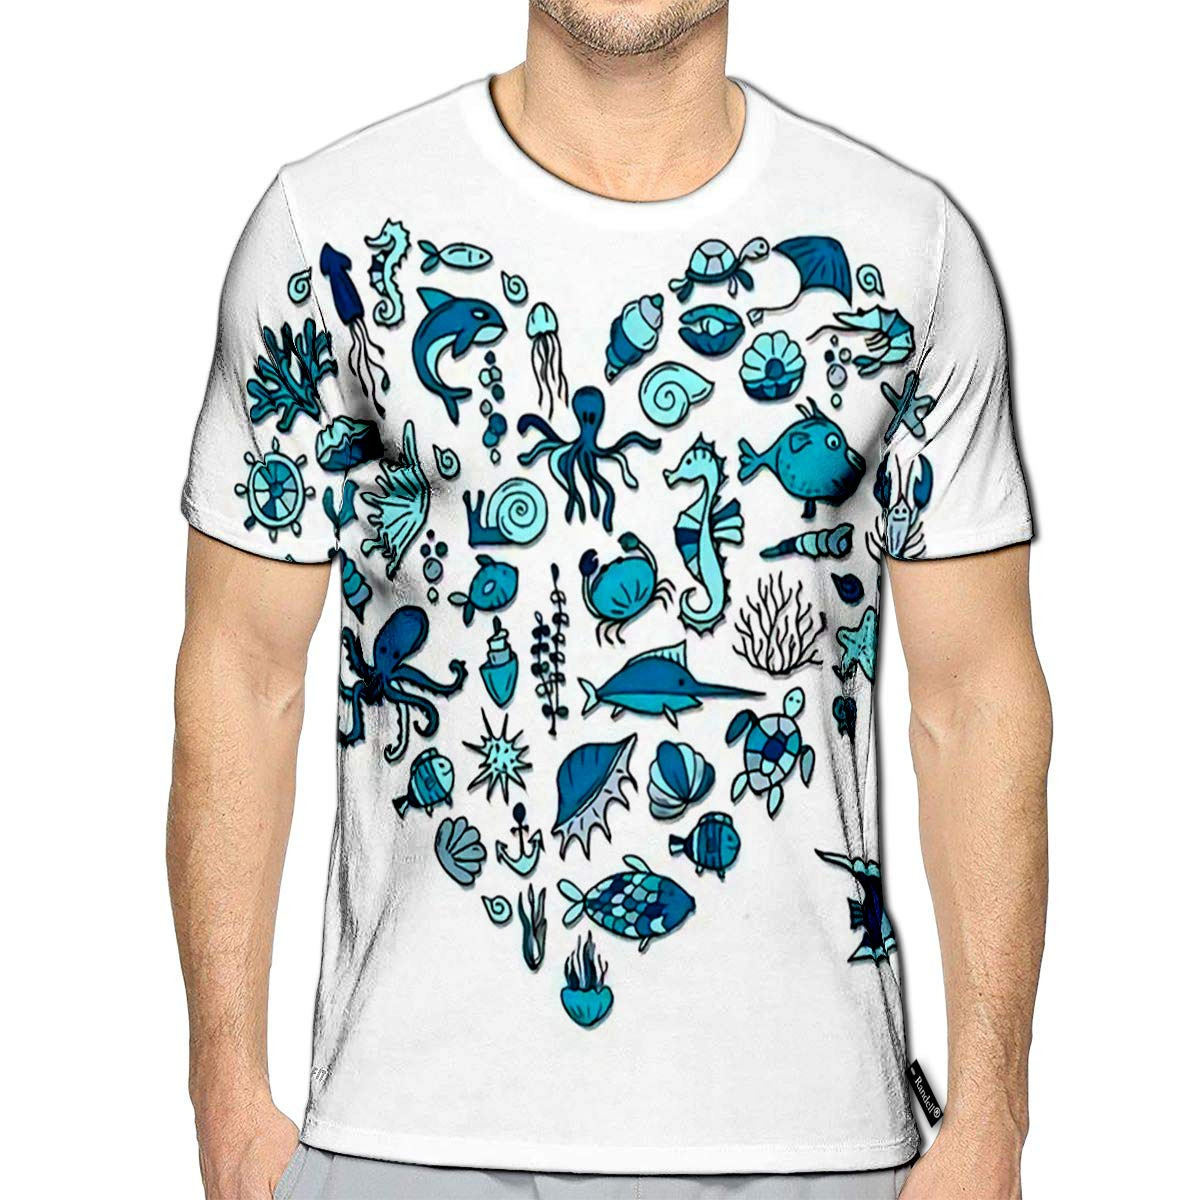 3D Printed T-Shirts Watercolor with Jams and Fruit Short Sleeve Tops Tees